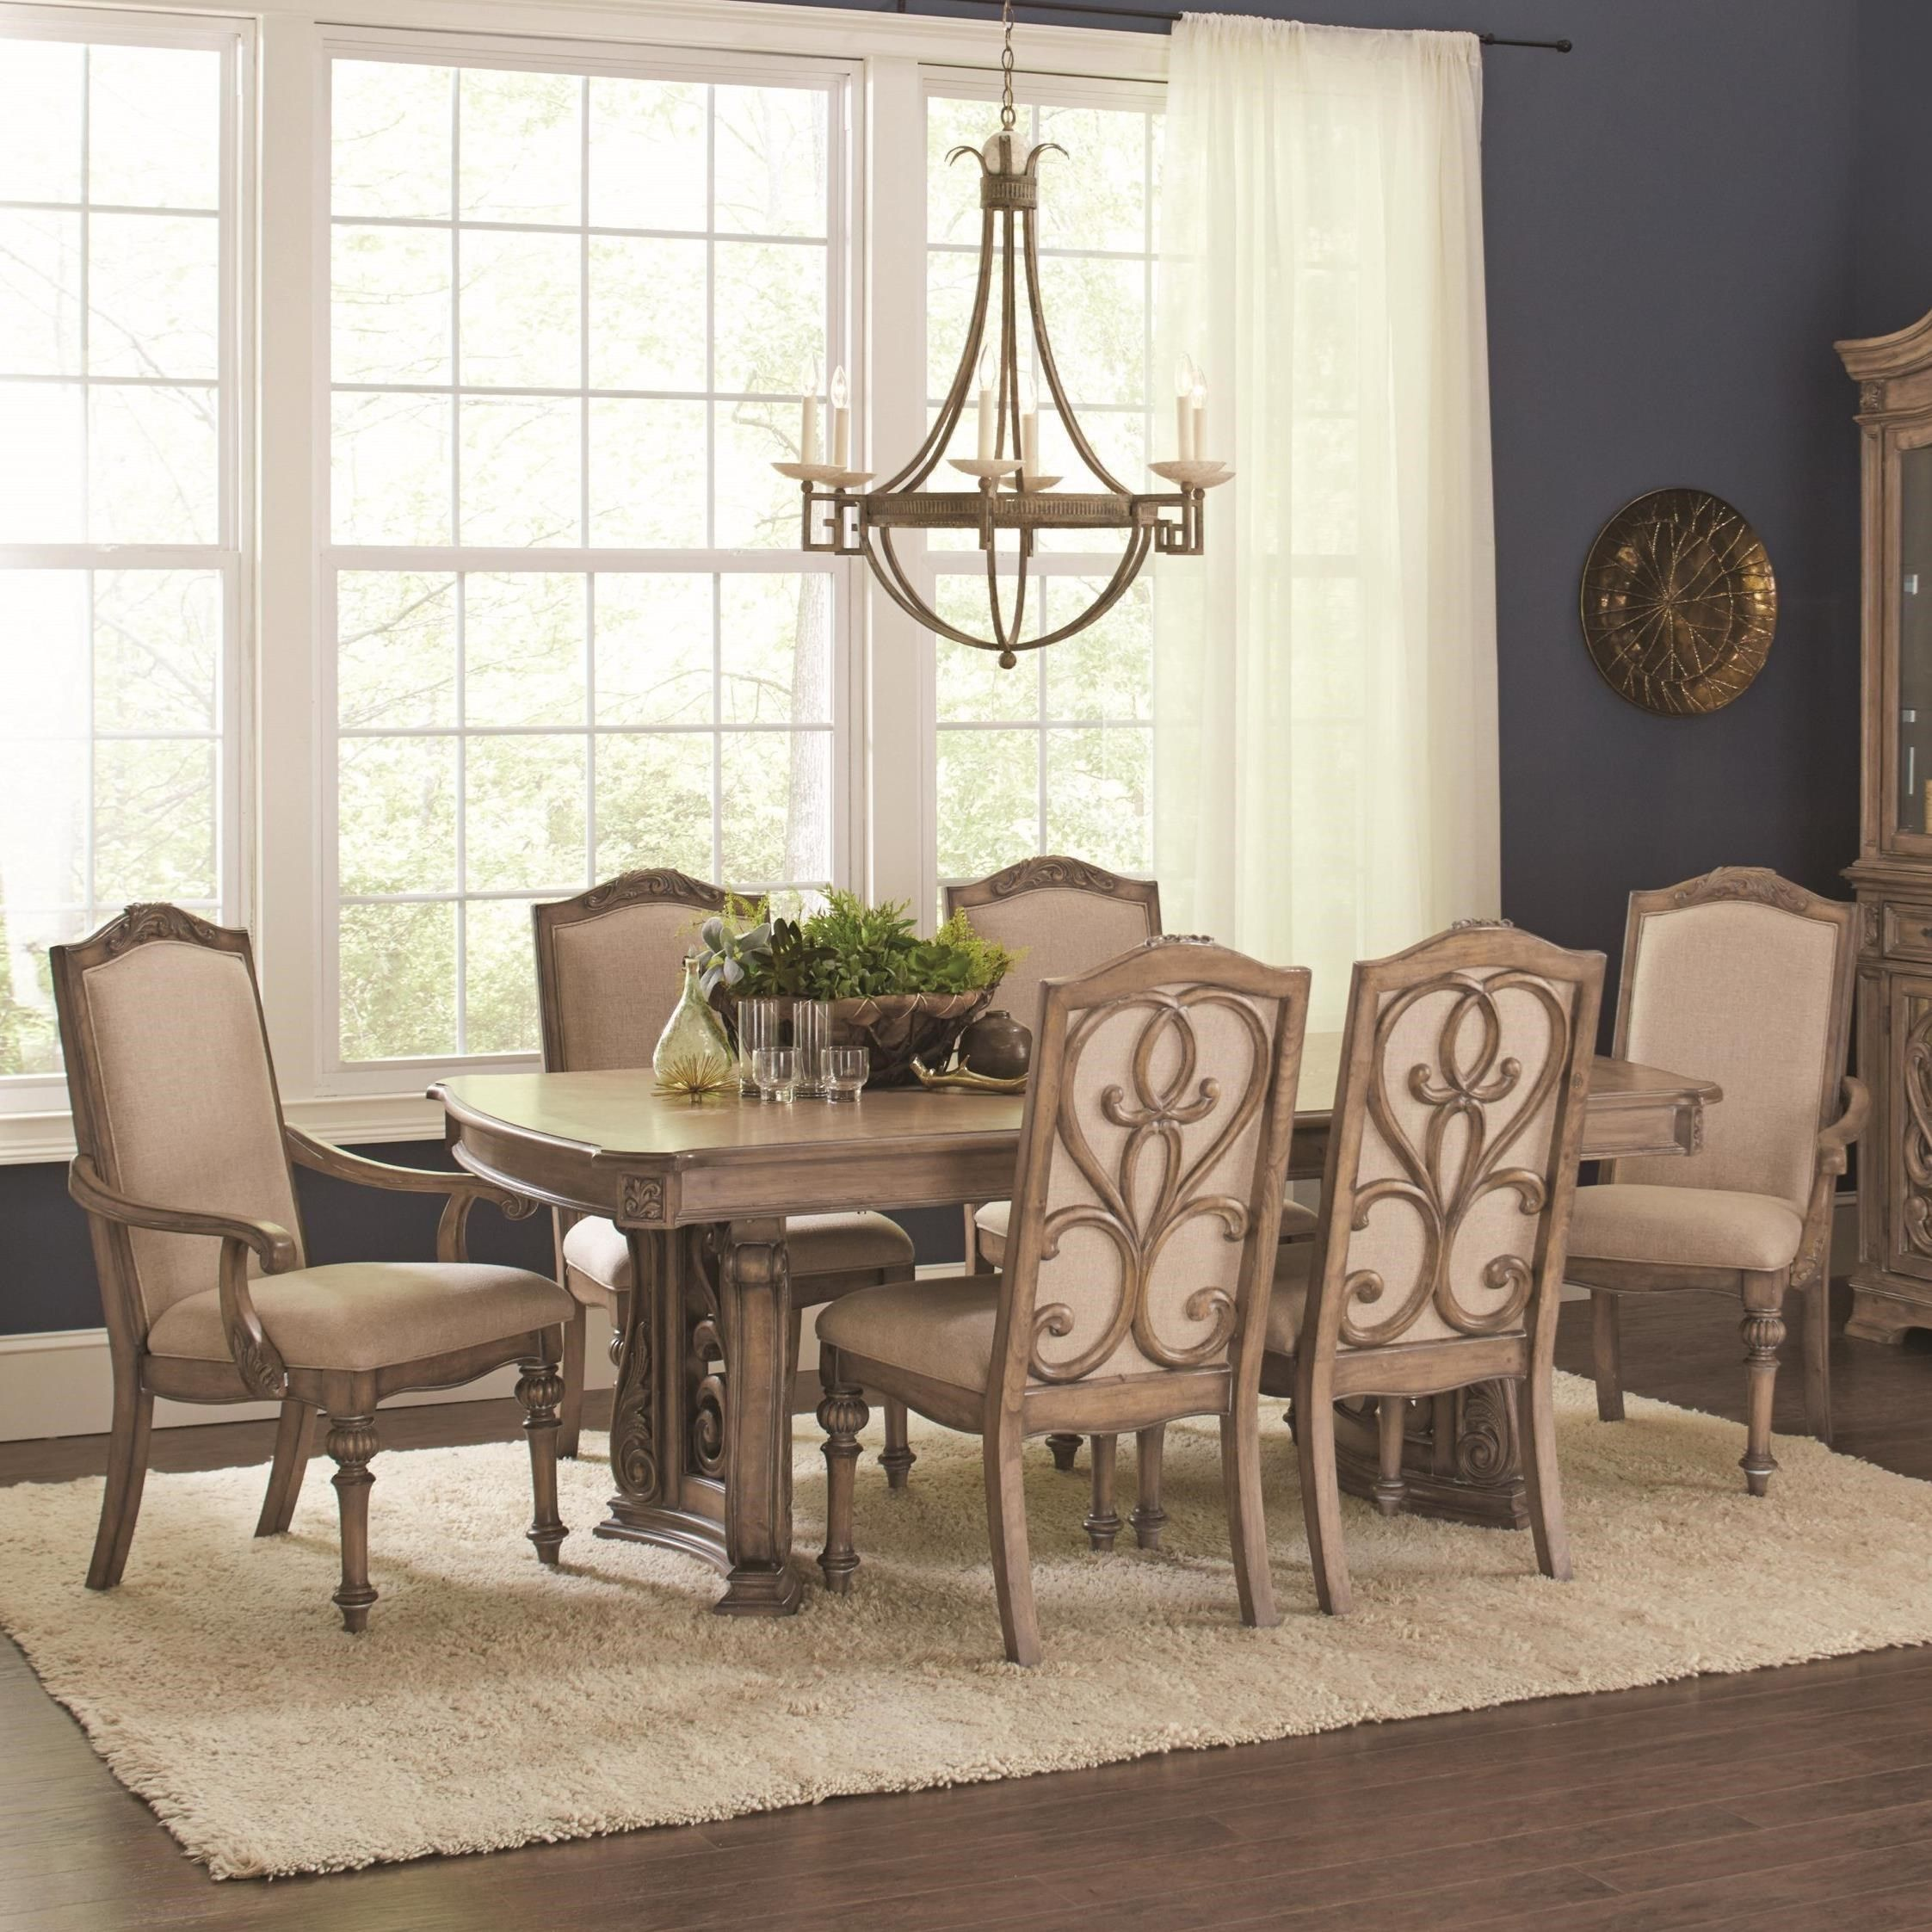 32 Stylish Dining Room Ideas To Impress Your Dinner Guests: Ilana Rectangular Dining Table By Coaster At Del Sol